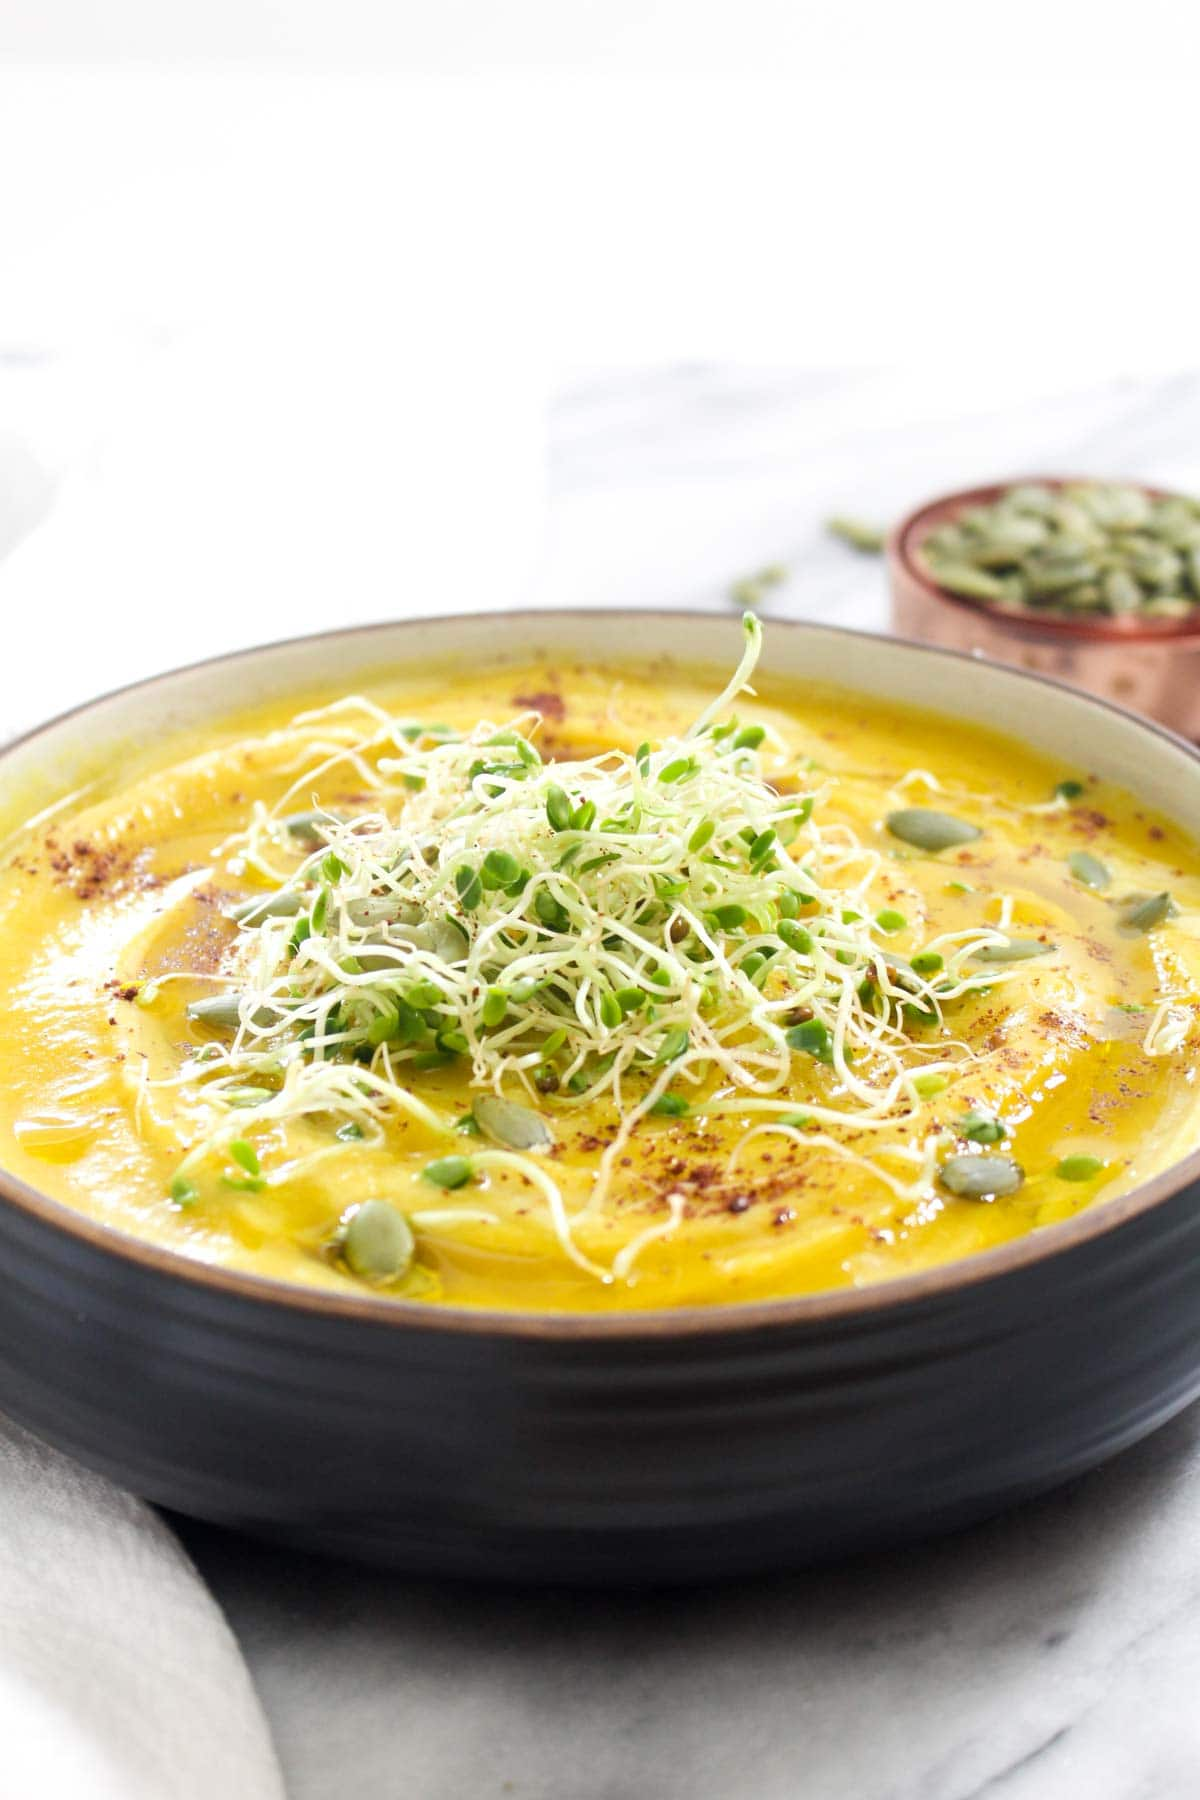 This Golden Beet and Cauliflower Soup recipe is a fast and easy 3 step dinner that is full of flavor and veggies! Ready to eat in just 35 minutes.   CatchingSeeds.com